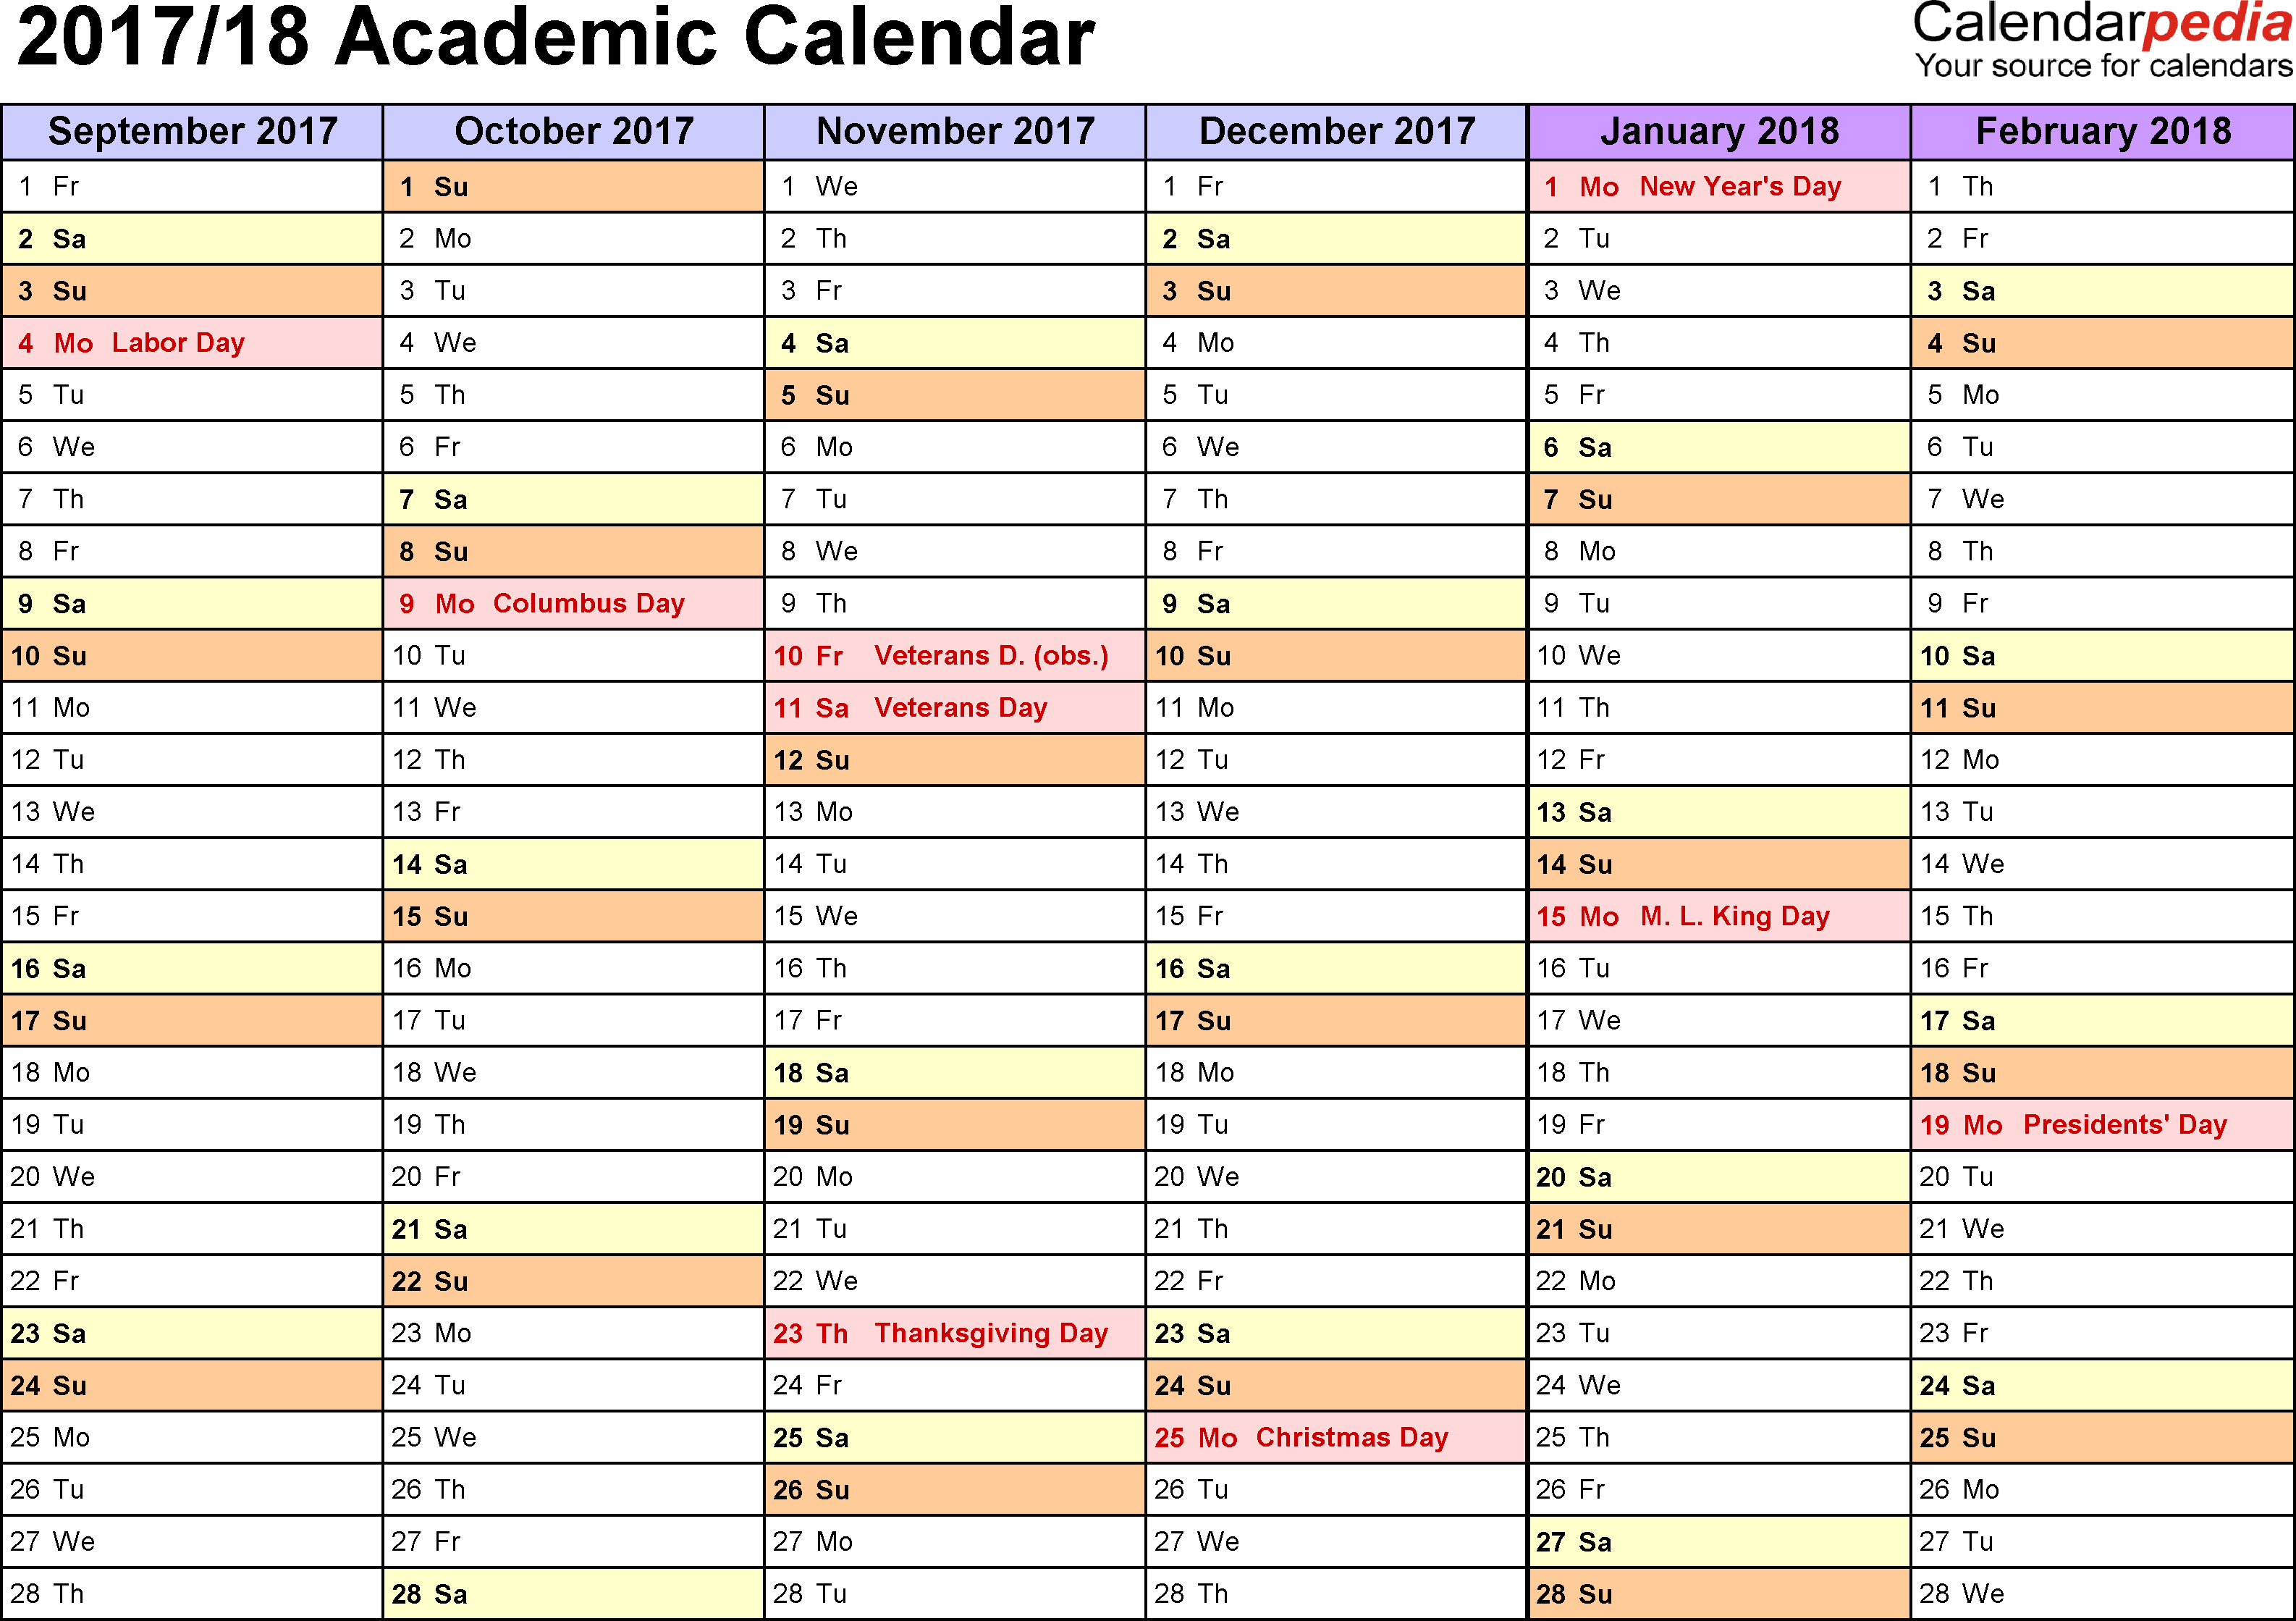 Template 3: Academic calendar 2017/18 for Word, landscape orientation, months horizontally, 2 pages